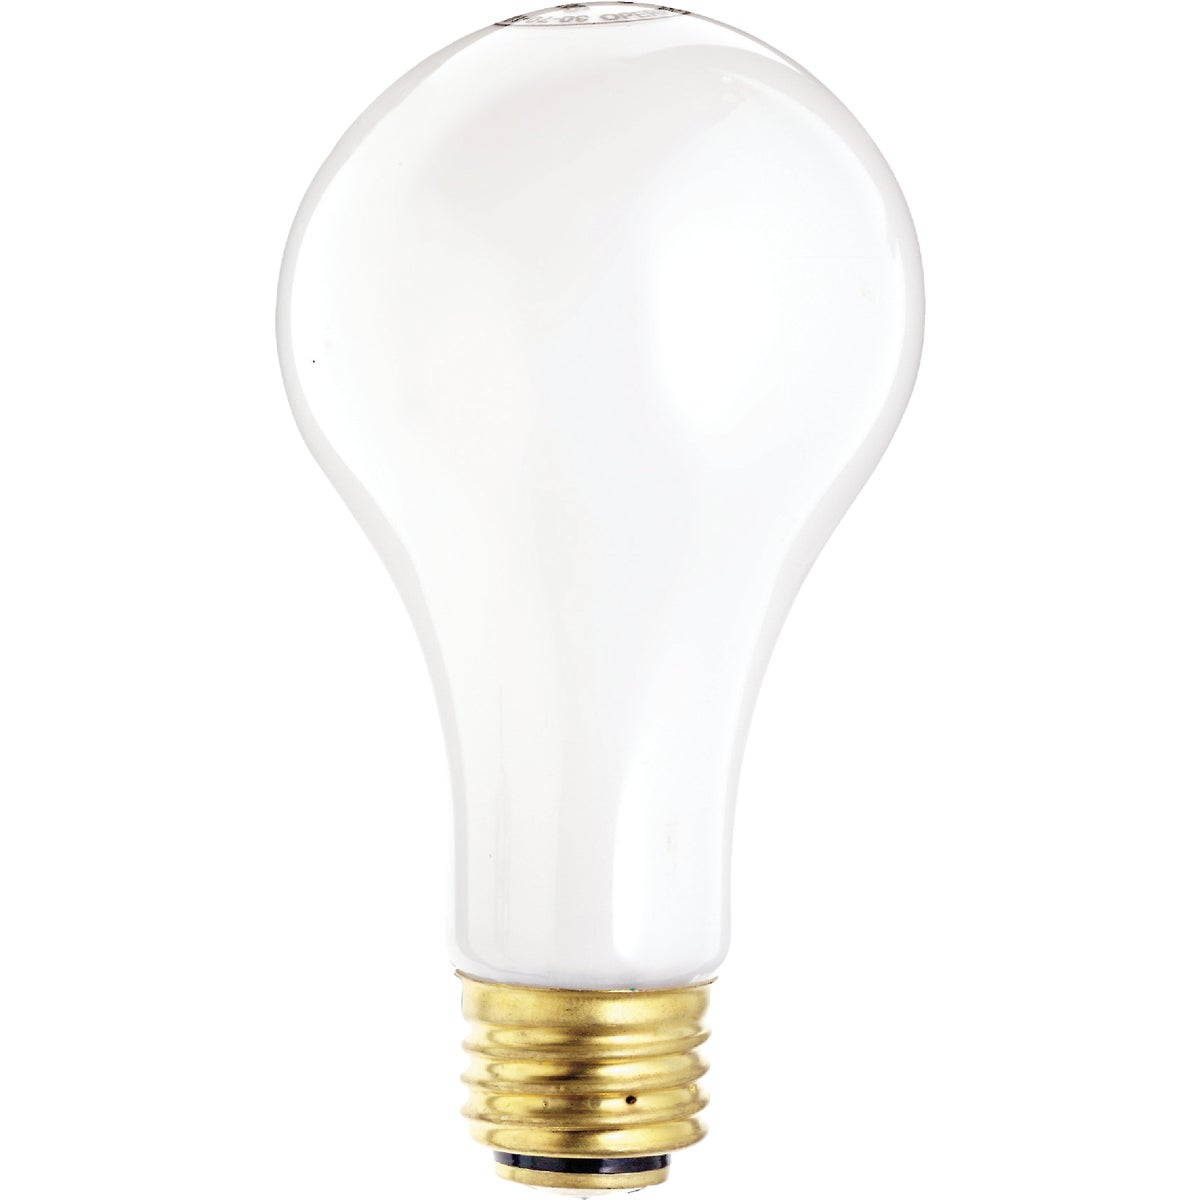 30/100W SW 3-WAY BULB - 97493 by G E Lighting